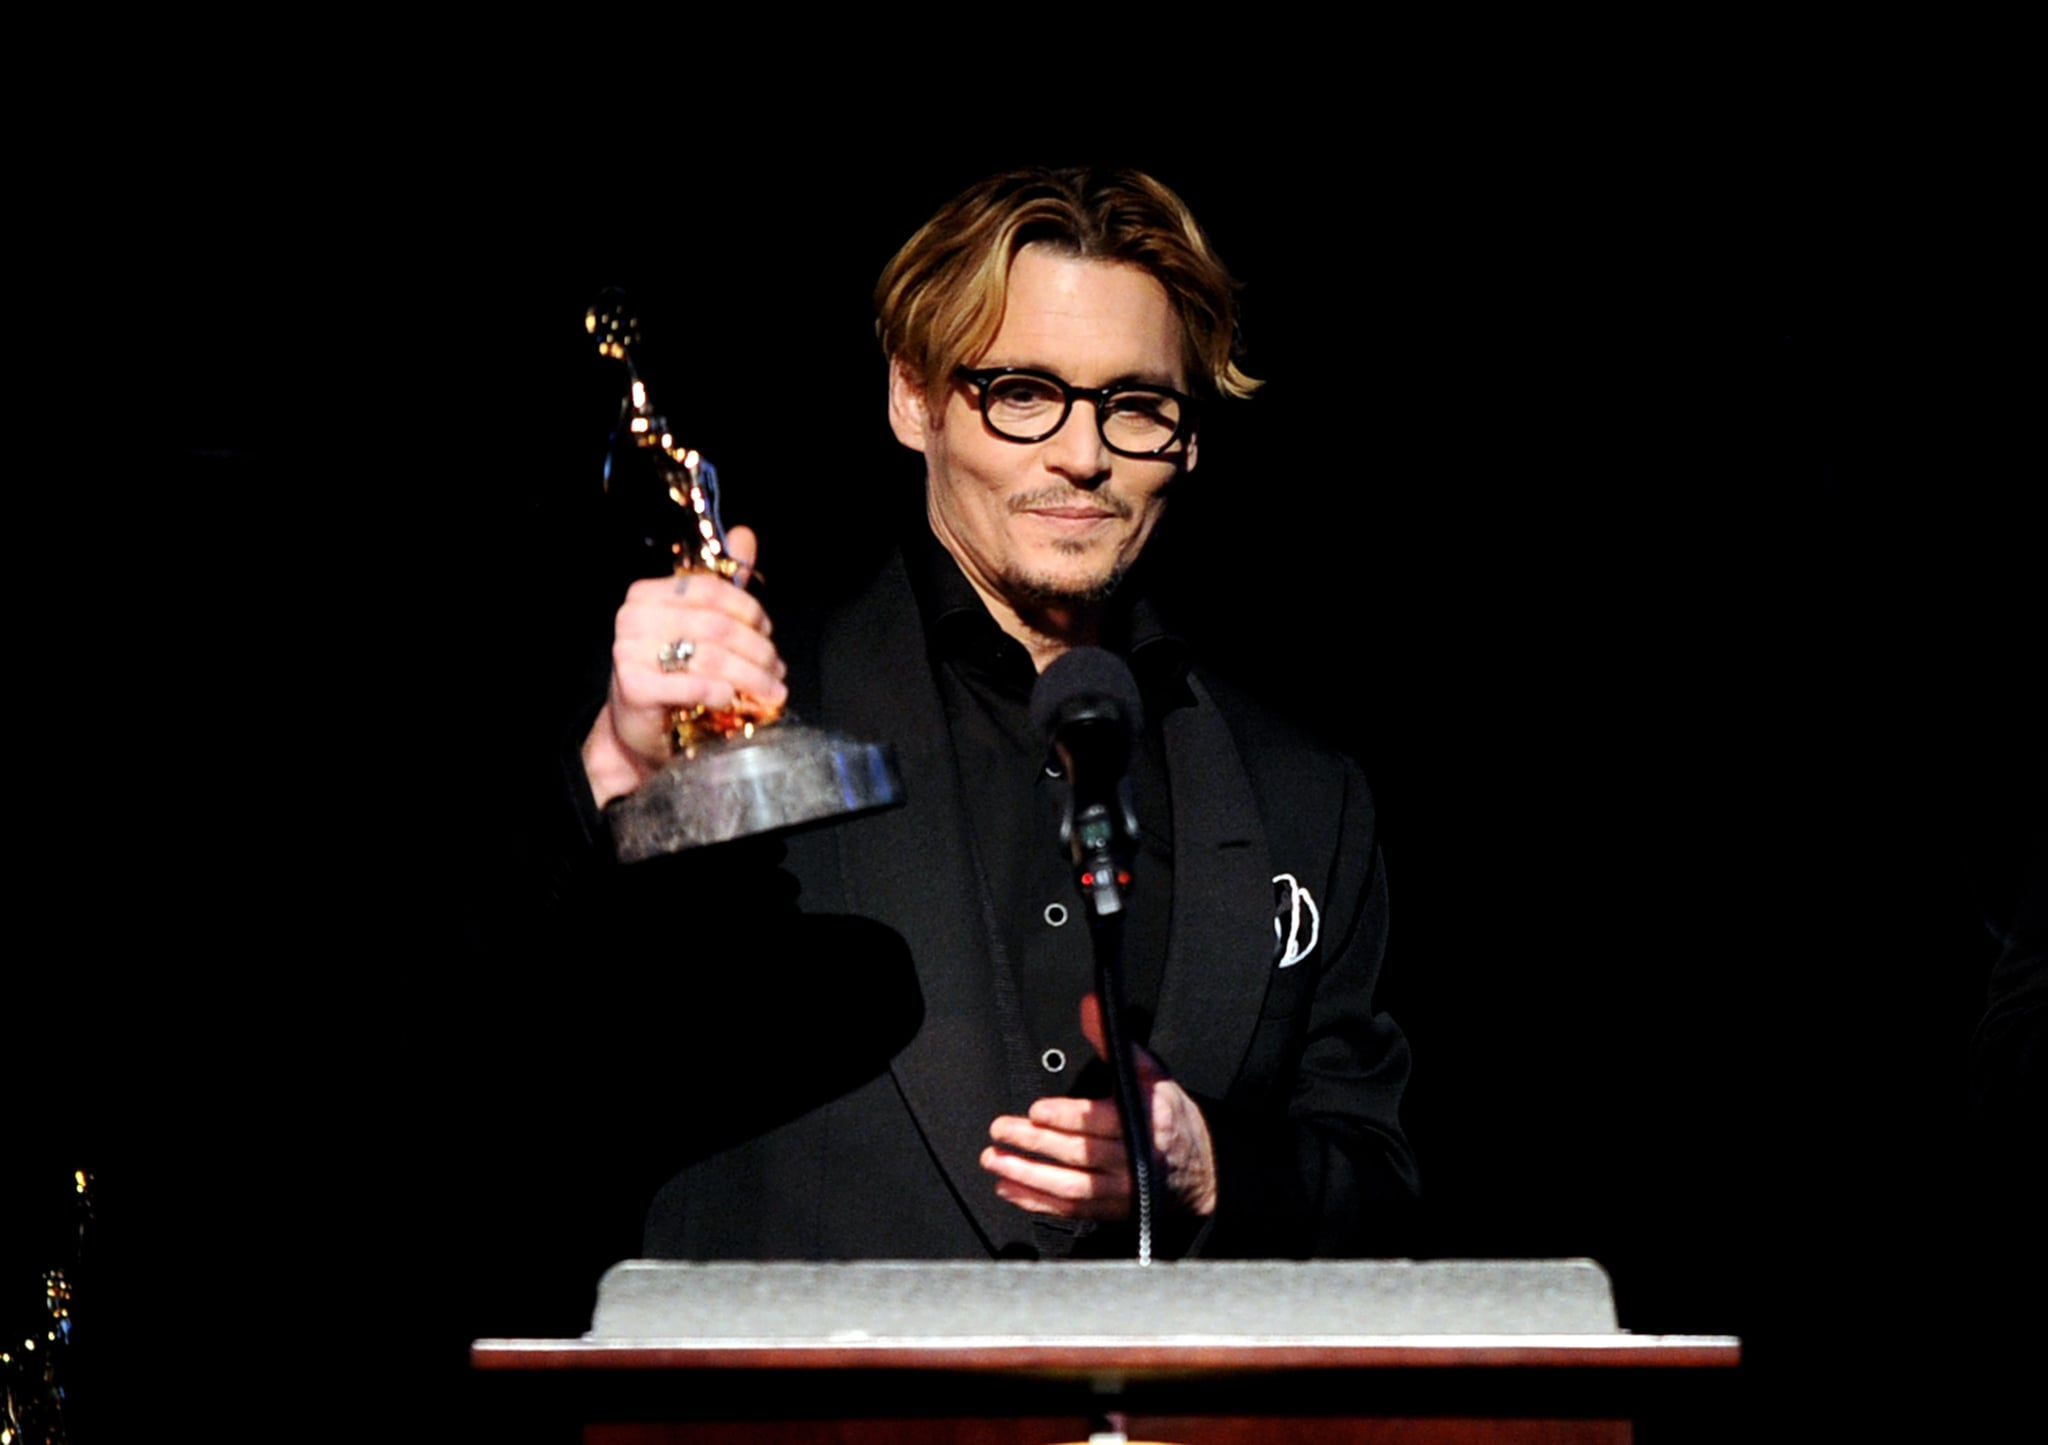 Johnny Depp received the distinguished artisan award at the Make-Up Artists and Hair Stylists Guild Awards in LA on Saturday.